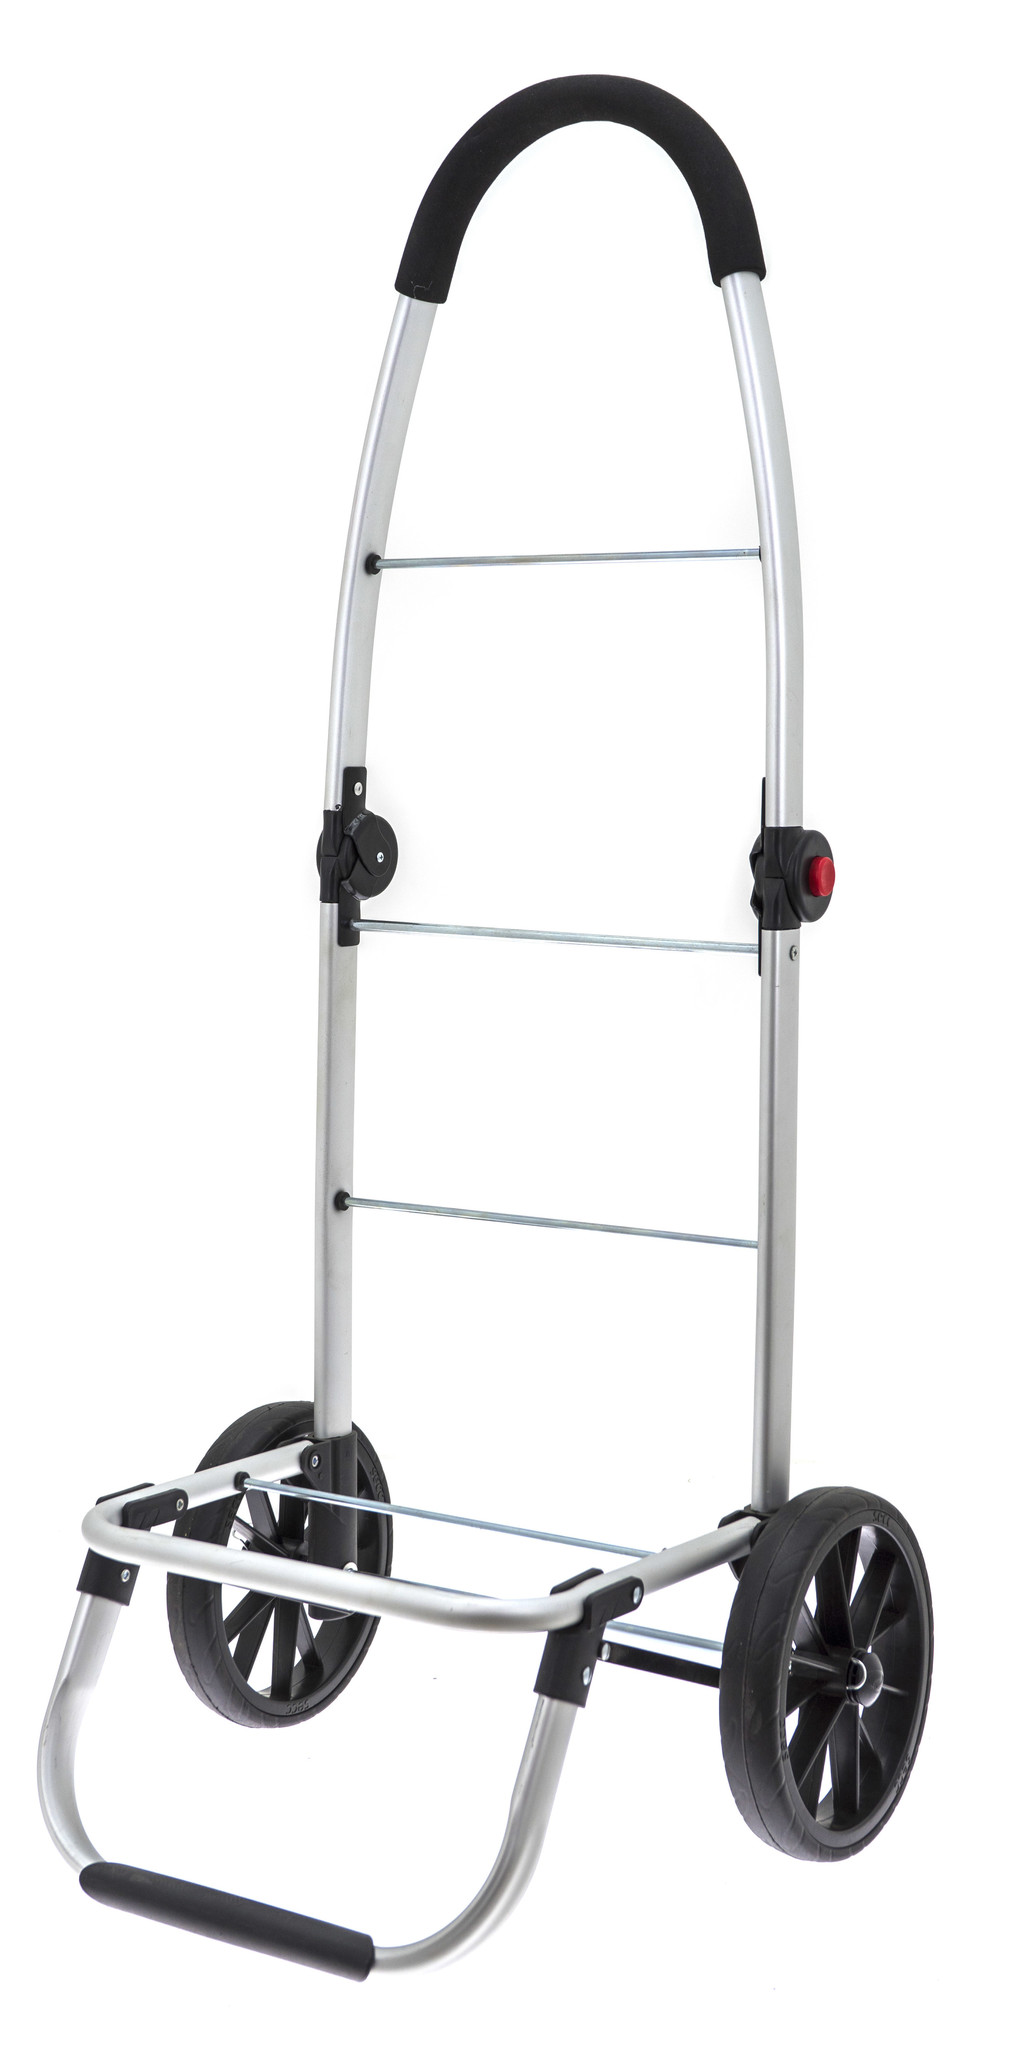 COMFORT Shopping Trolley